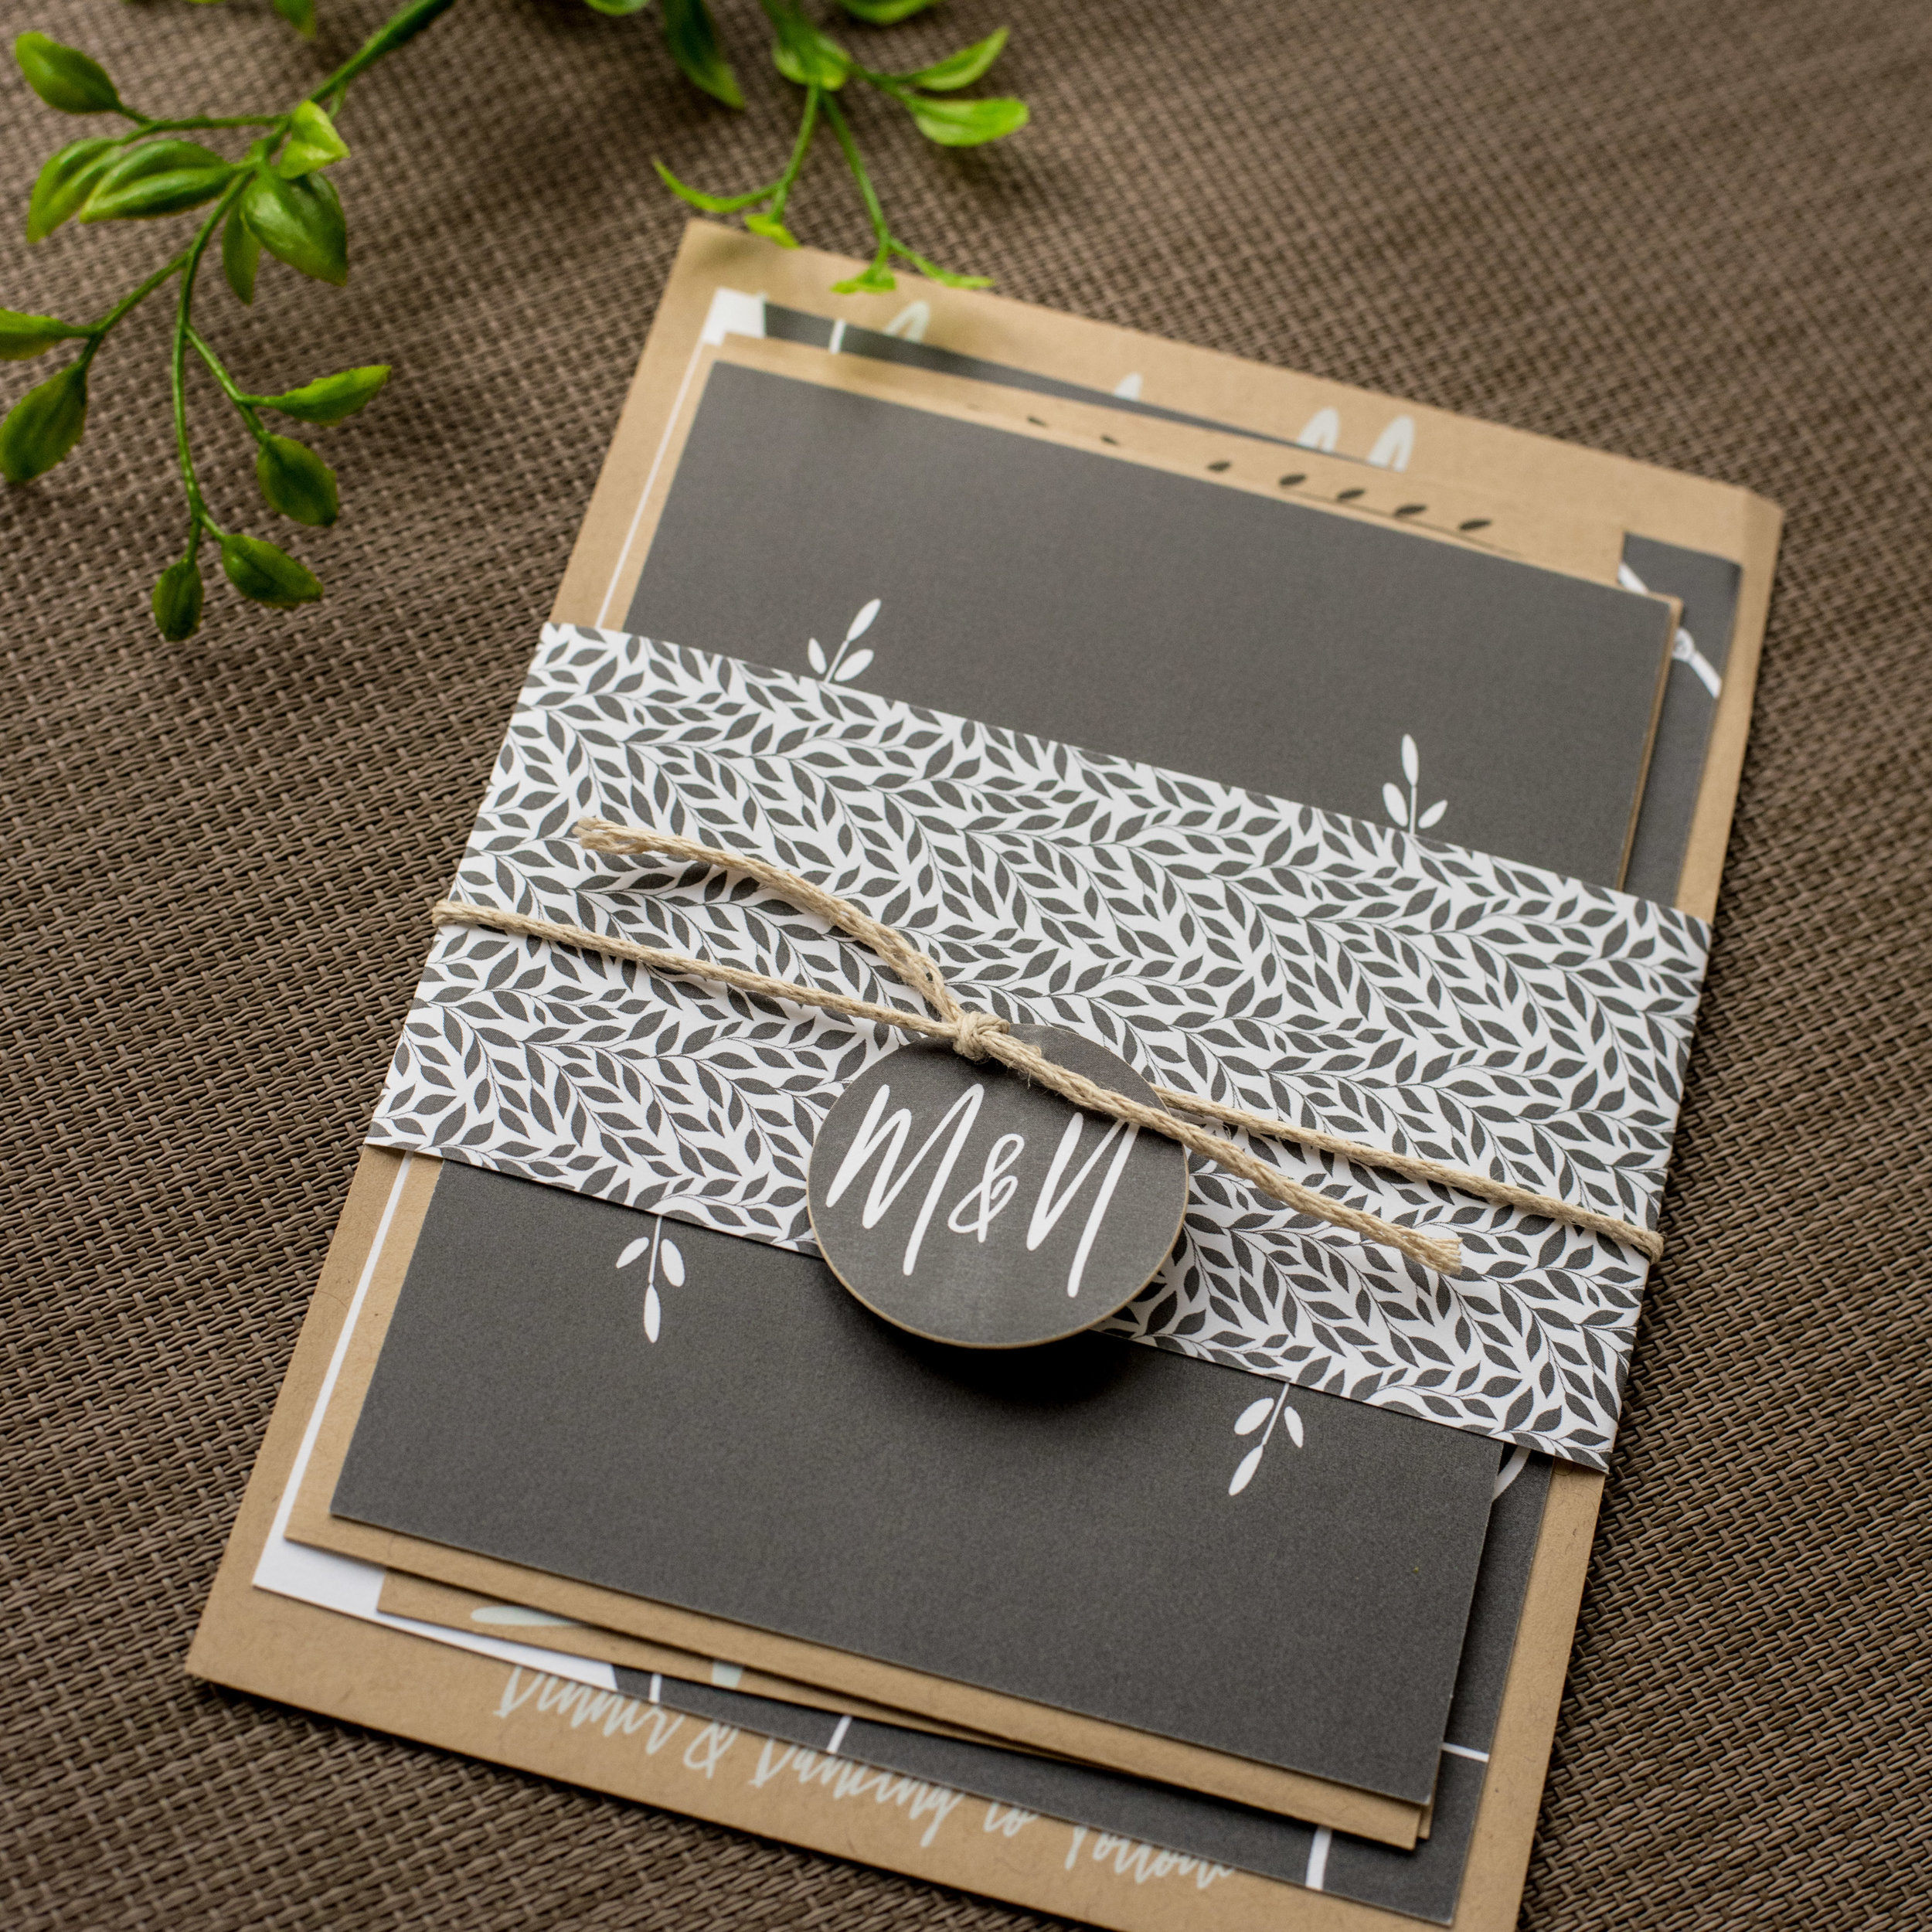 Industrial Chic Wedding Invitation by Ashley Parker Creative on Kraft Paper with Charcoal and Fern Accents, a Monogram Tag, and Printed Bellyband.  Full Assembly of Invitation.